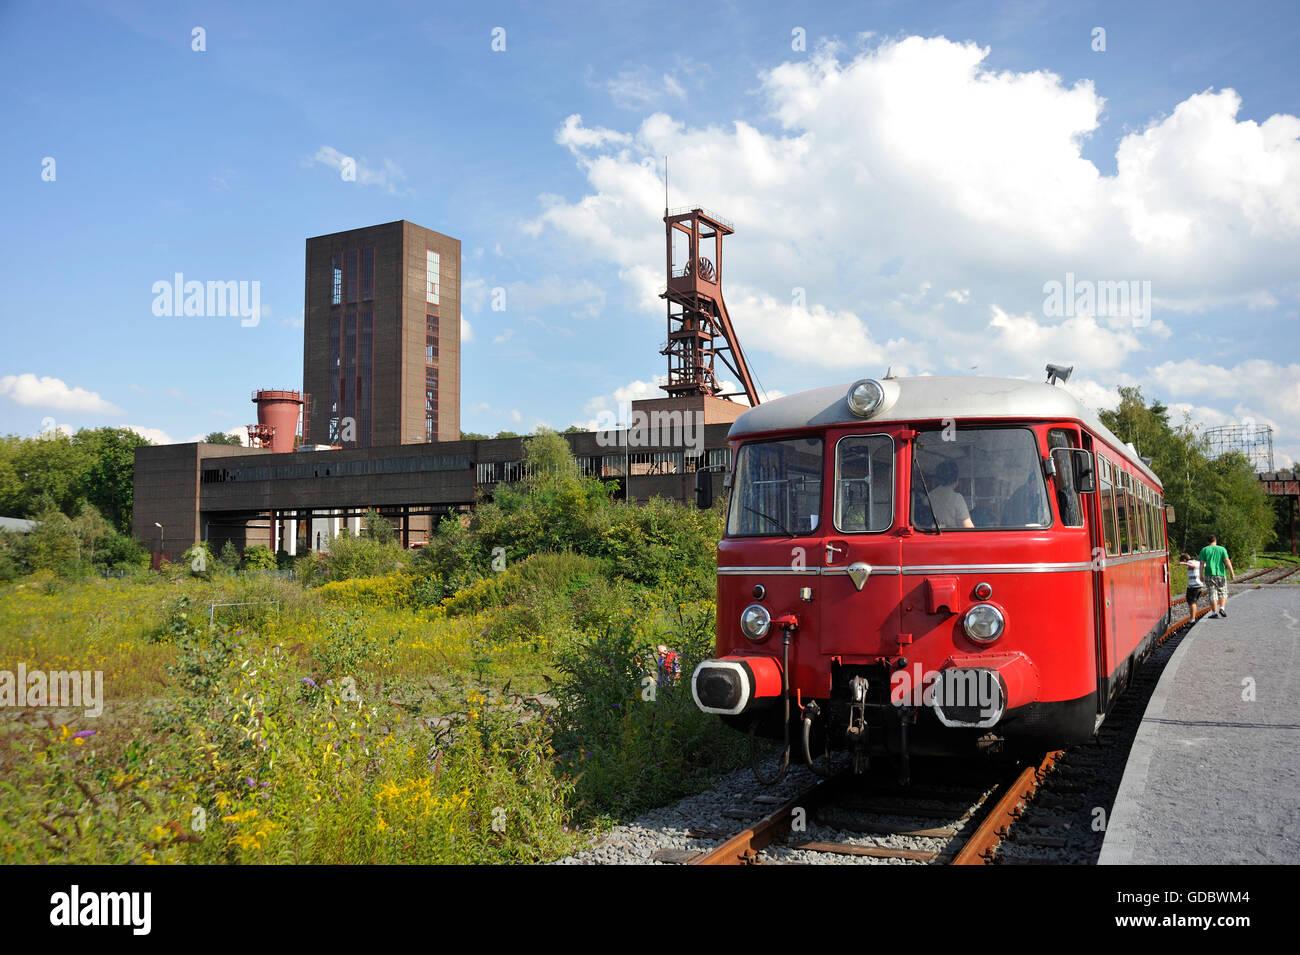 Coal mine Zollverein, industrial memorial, Essen, Ruhr area, North Rhine-Westphalia, Germany / Industrial Heritage - Stock Image